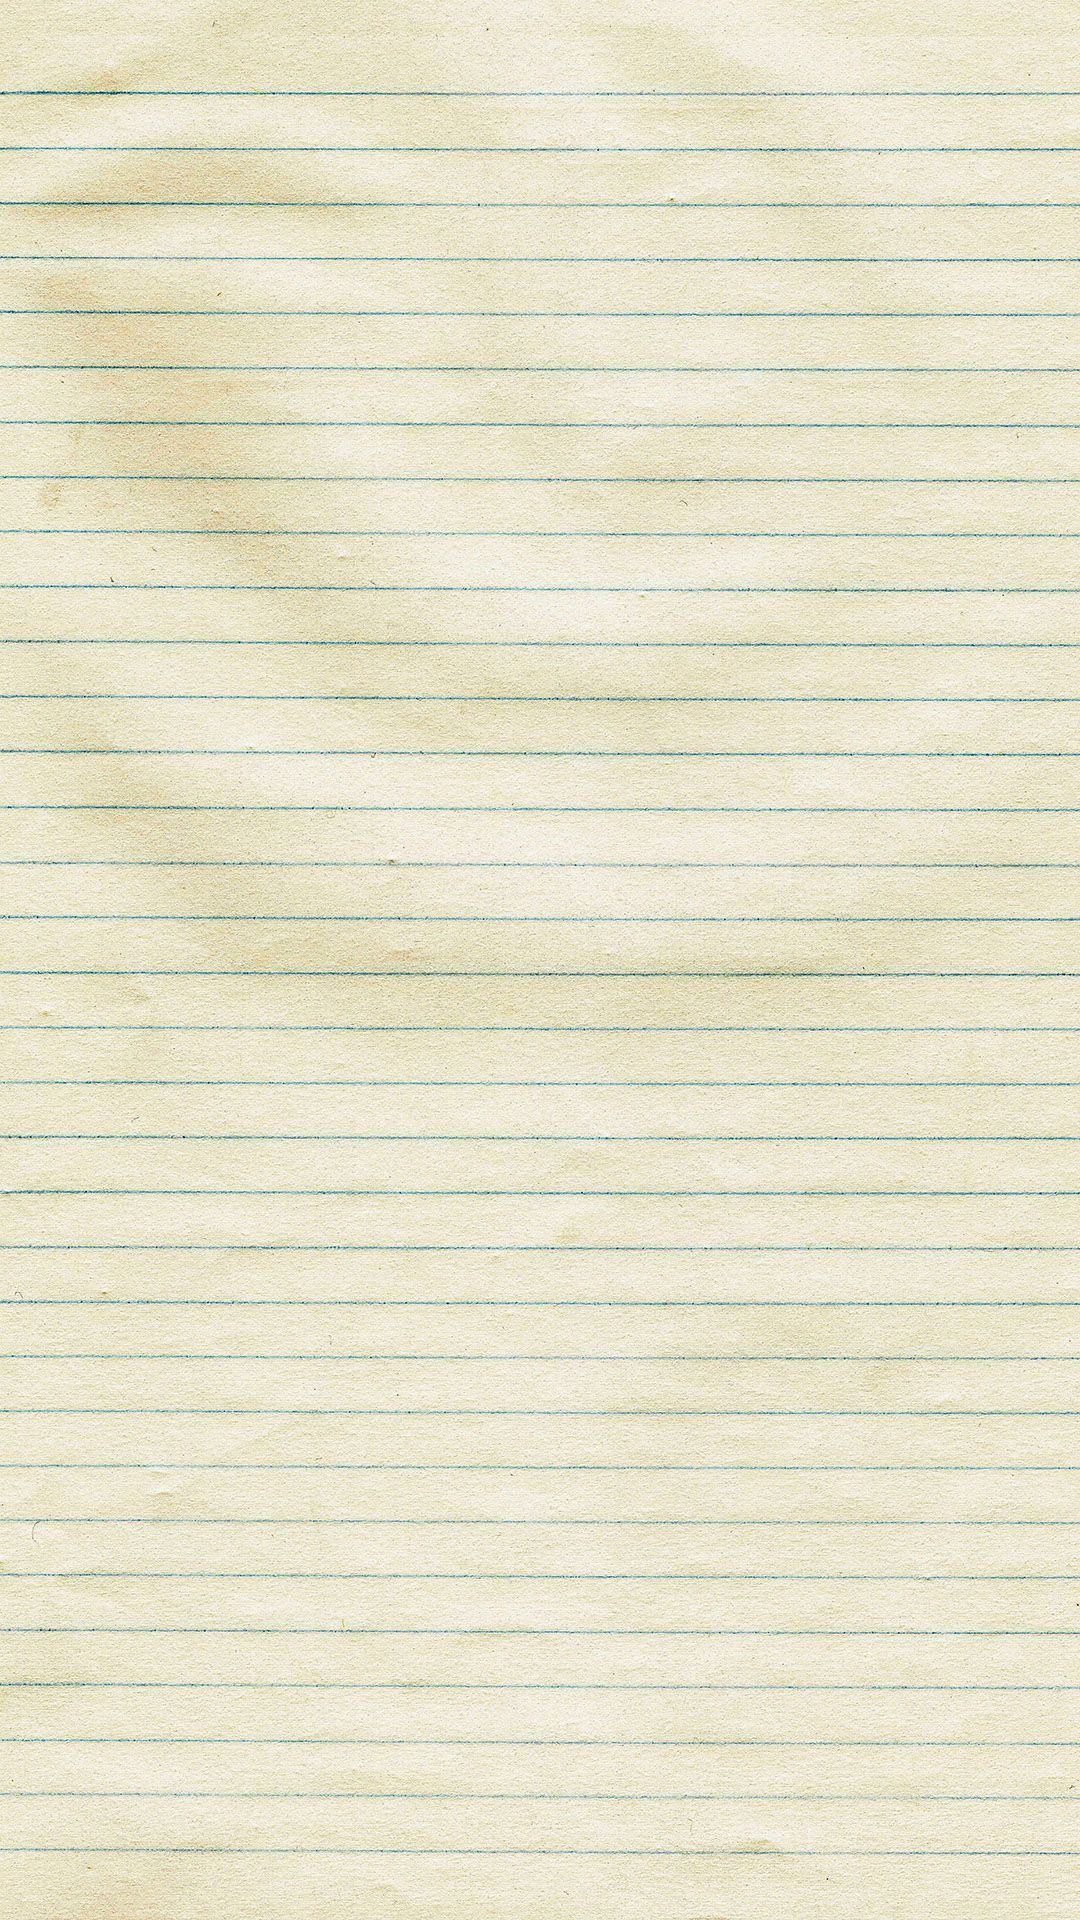 Notebook paper collection of texture backgrounds for - Wallpaper notebook paper ...